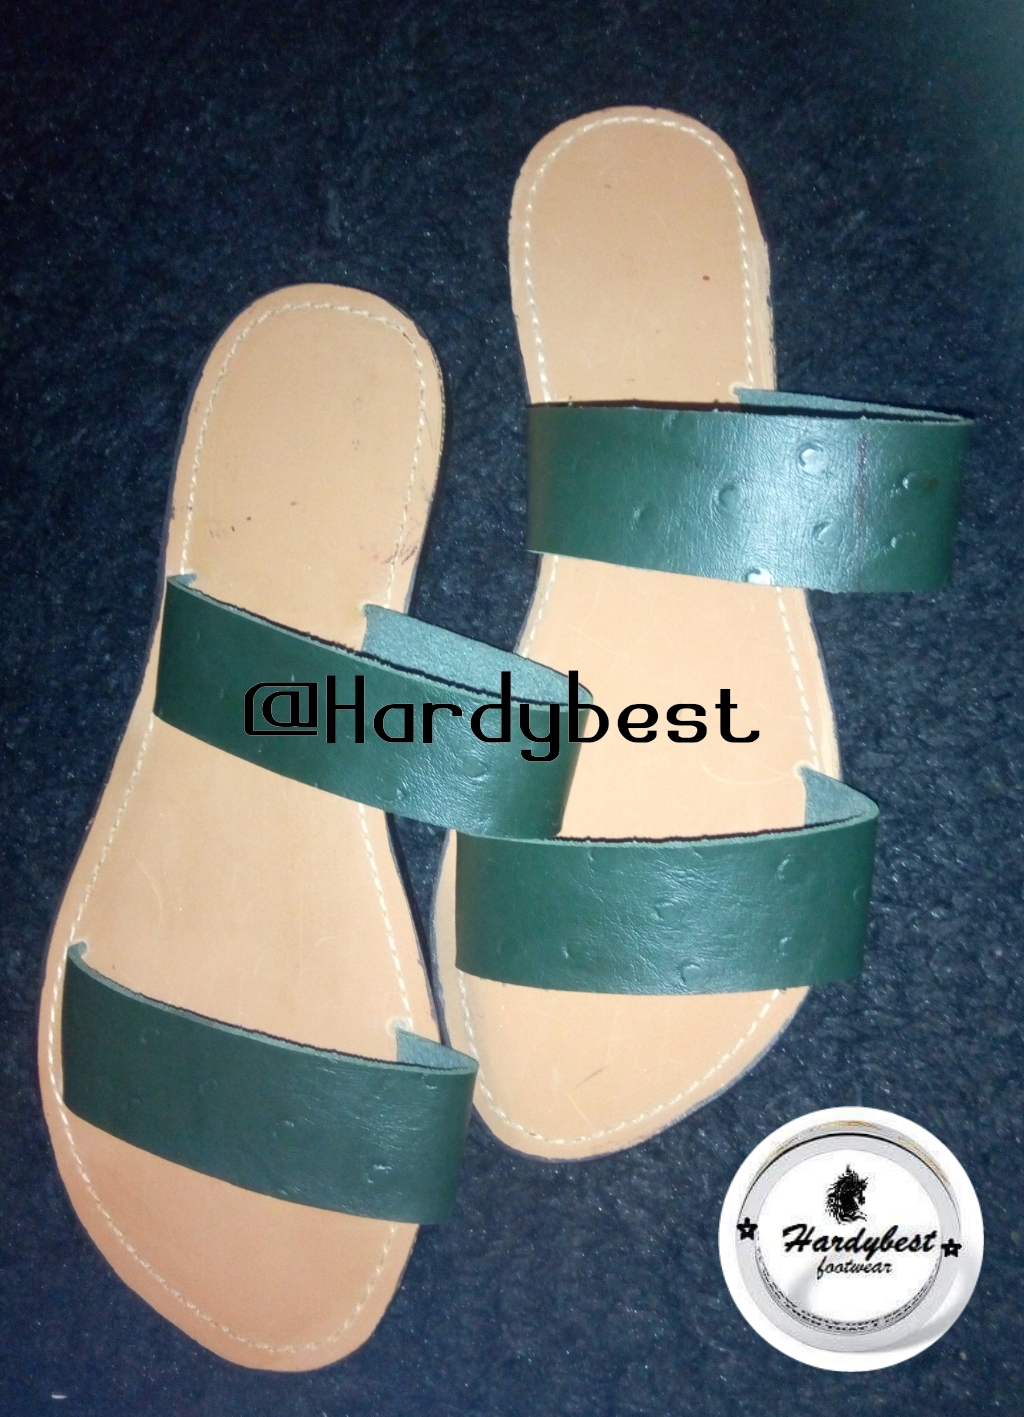 Hardybest cross slippers